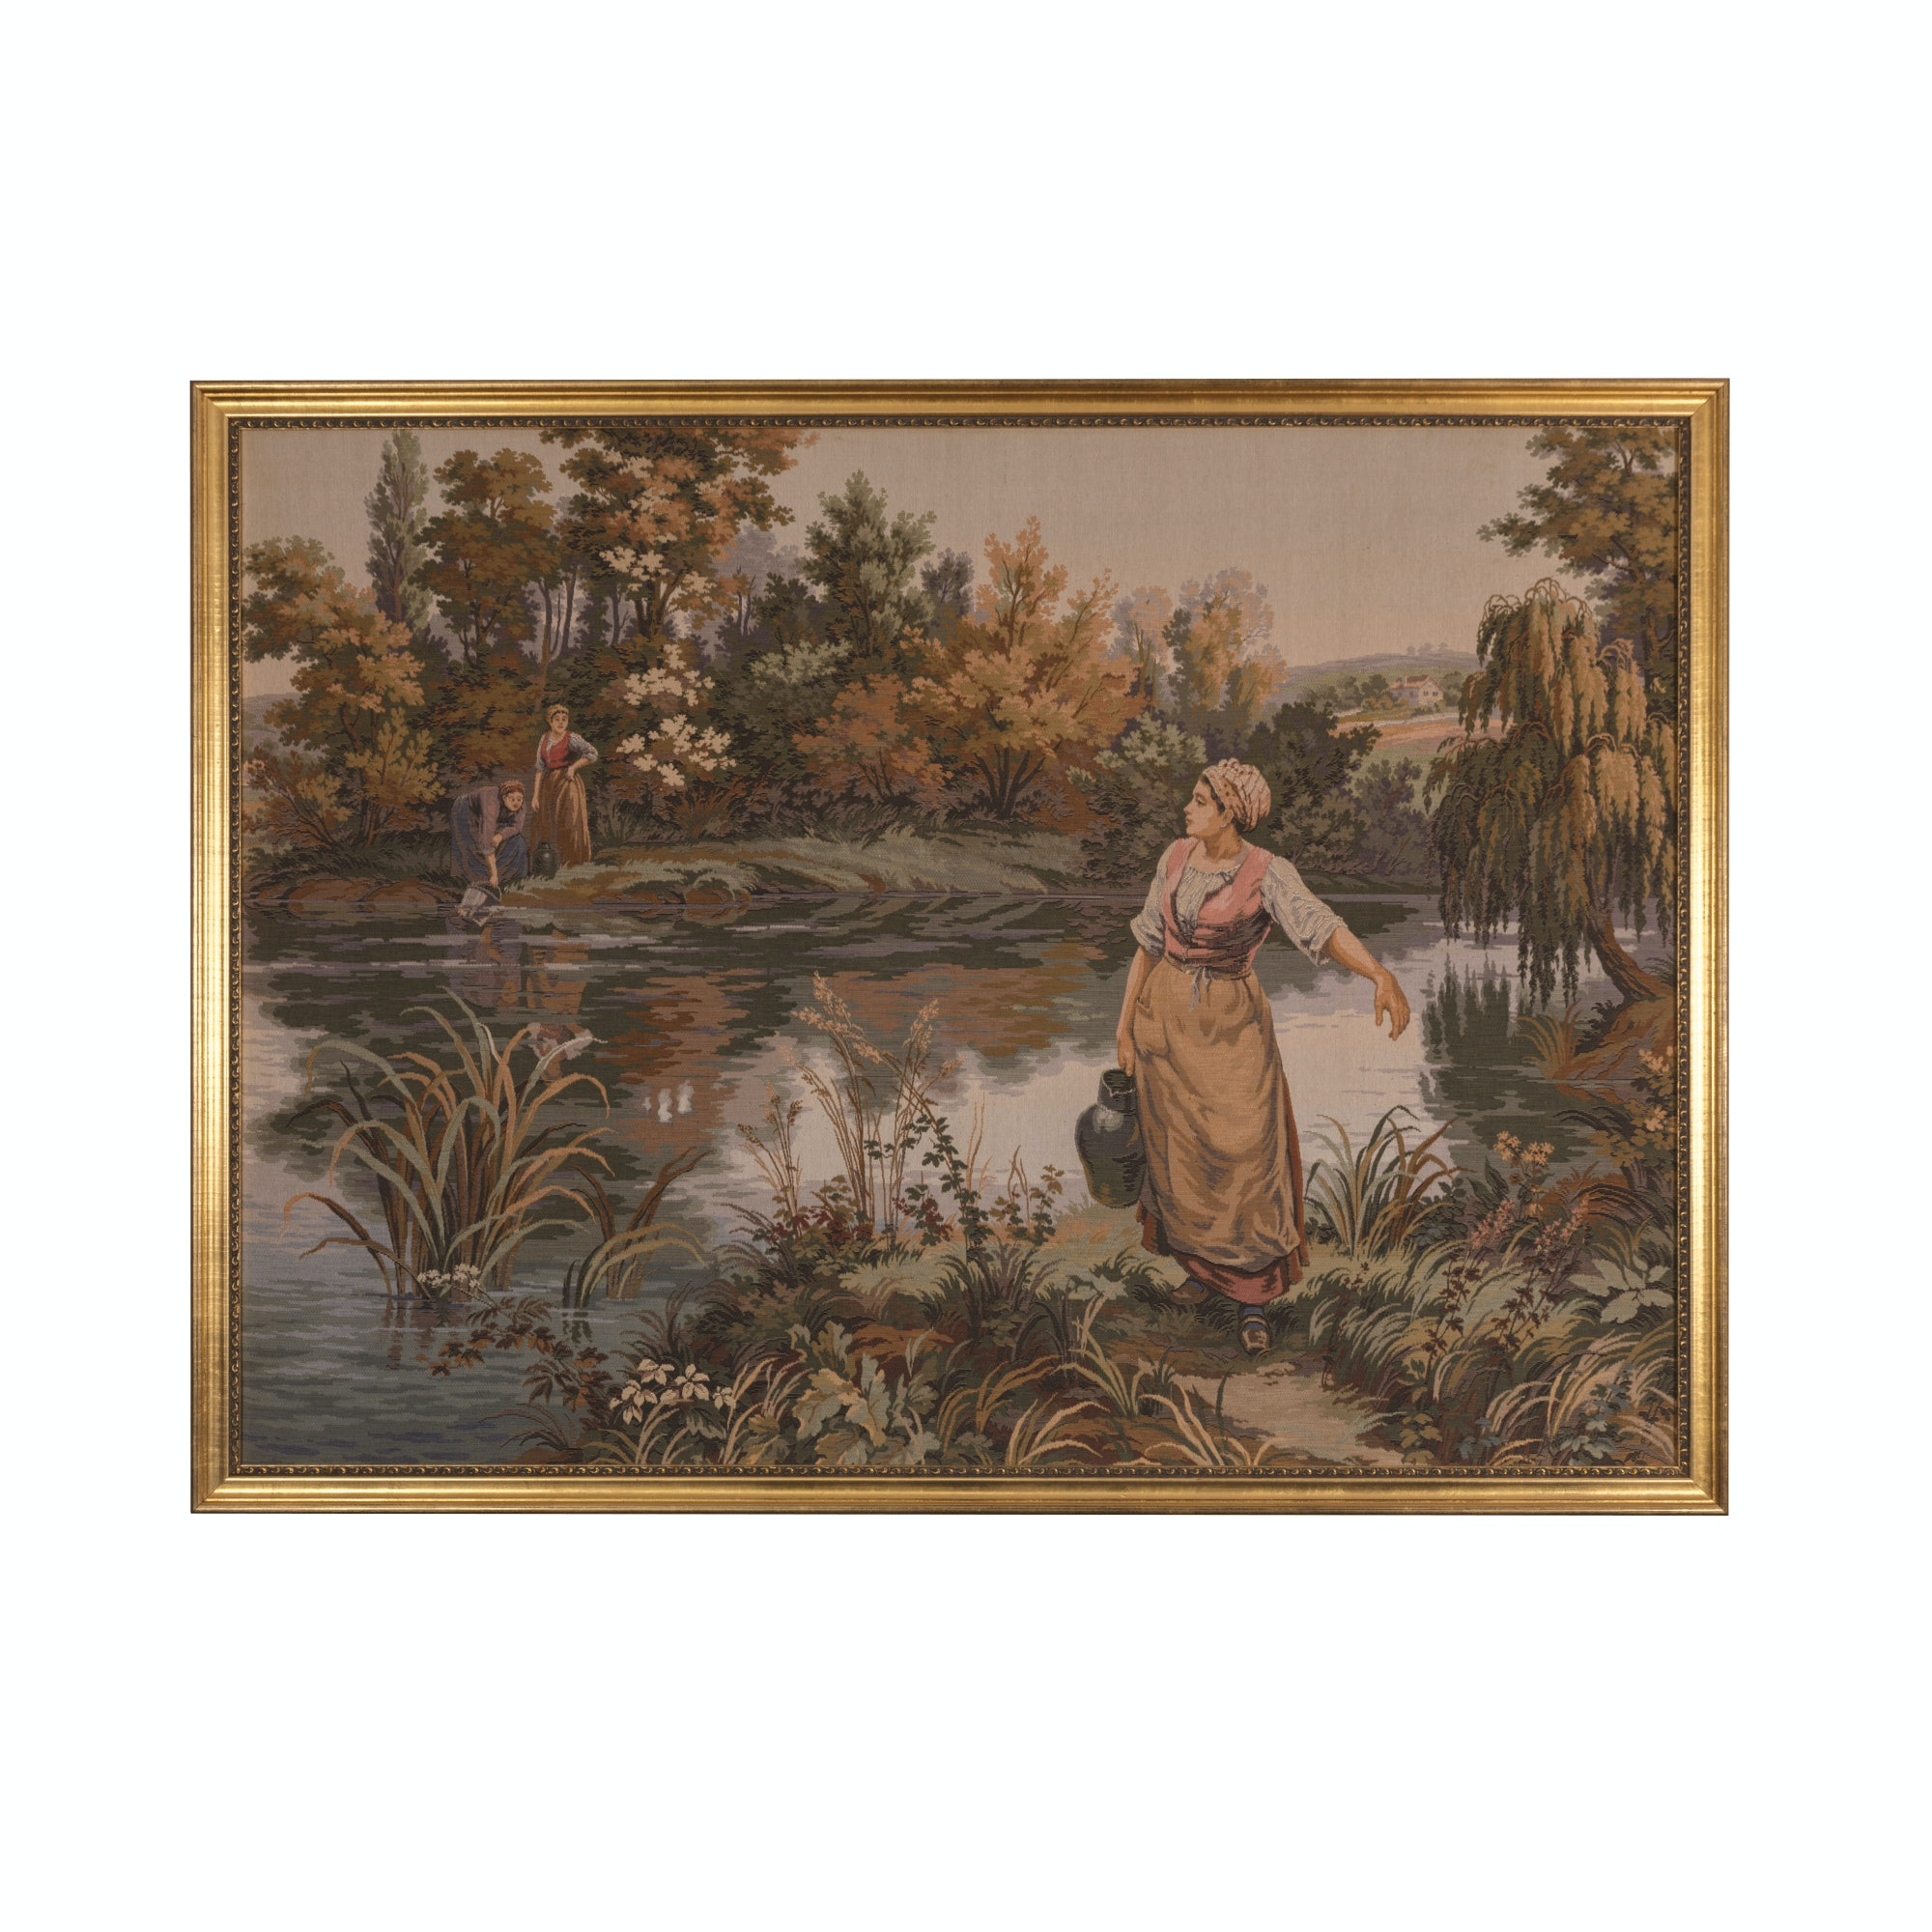 Needlepoint Tapestry of Women at a River